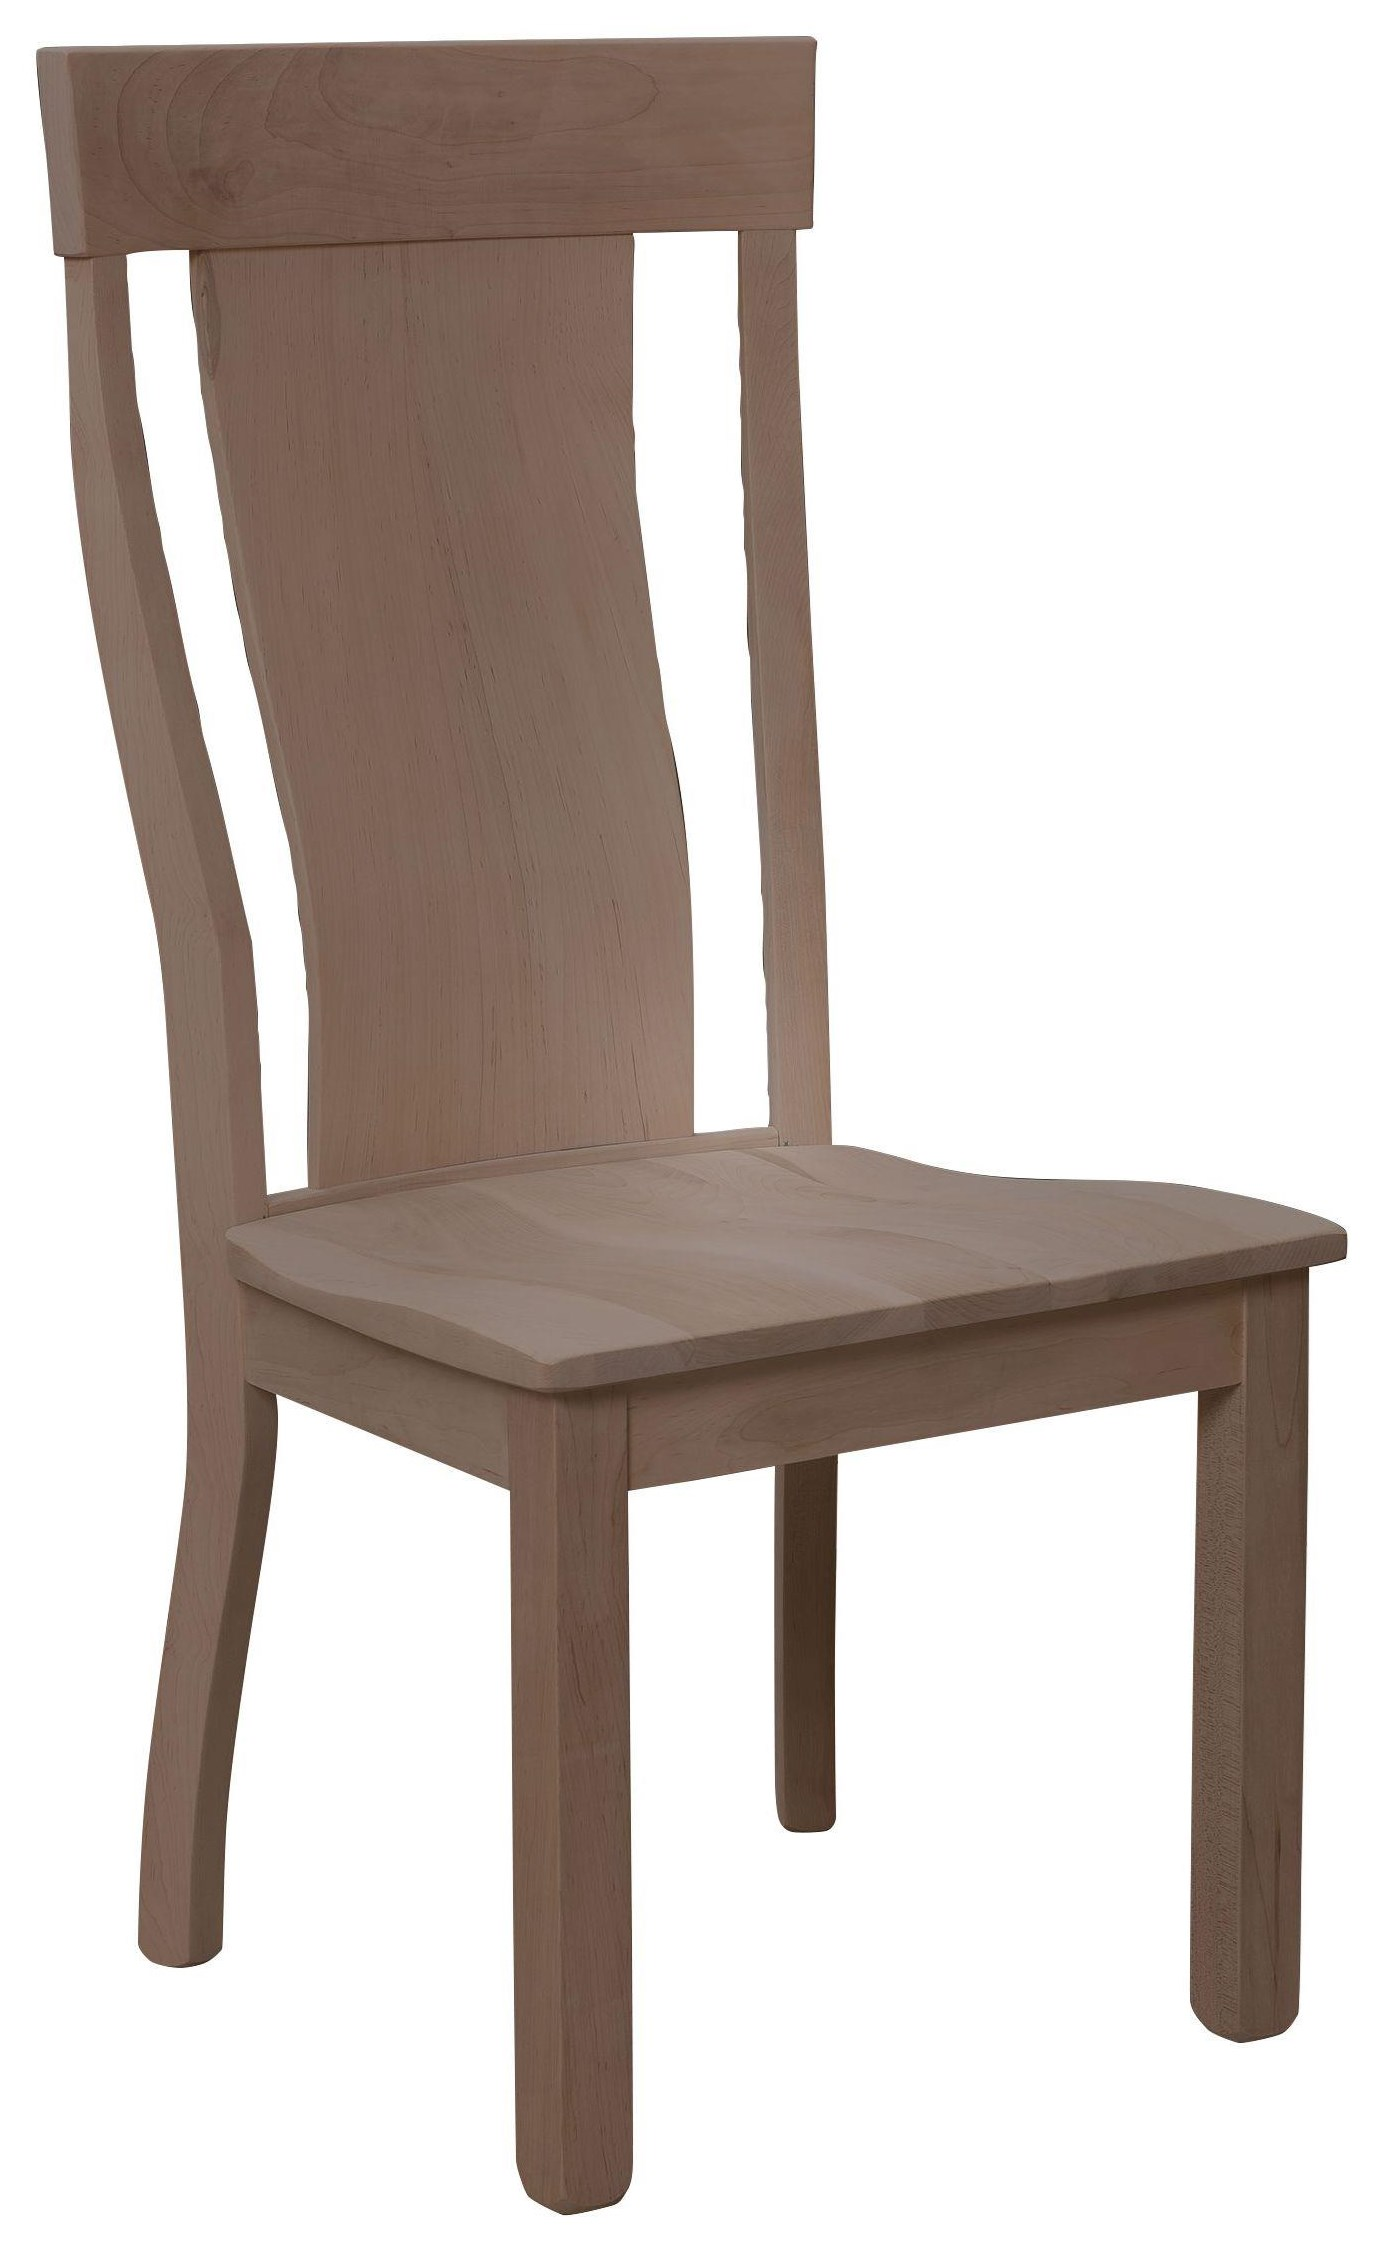 Weldon Side Chair by Wengerd Wood Products at Wayside Furniture